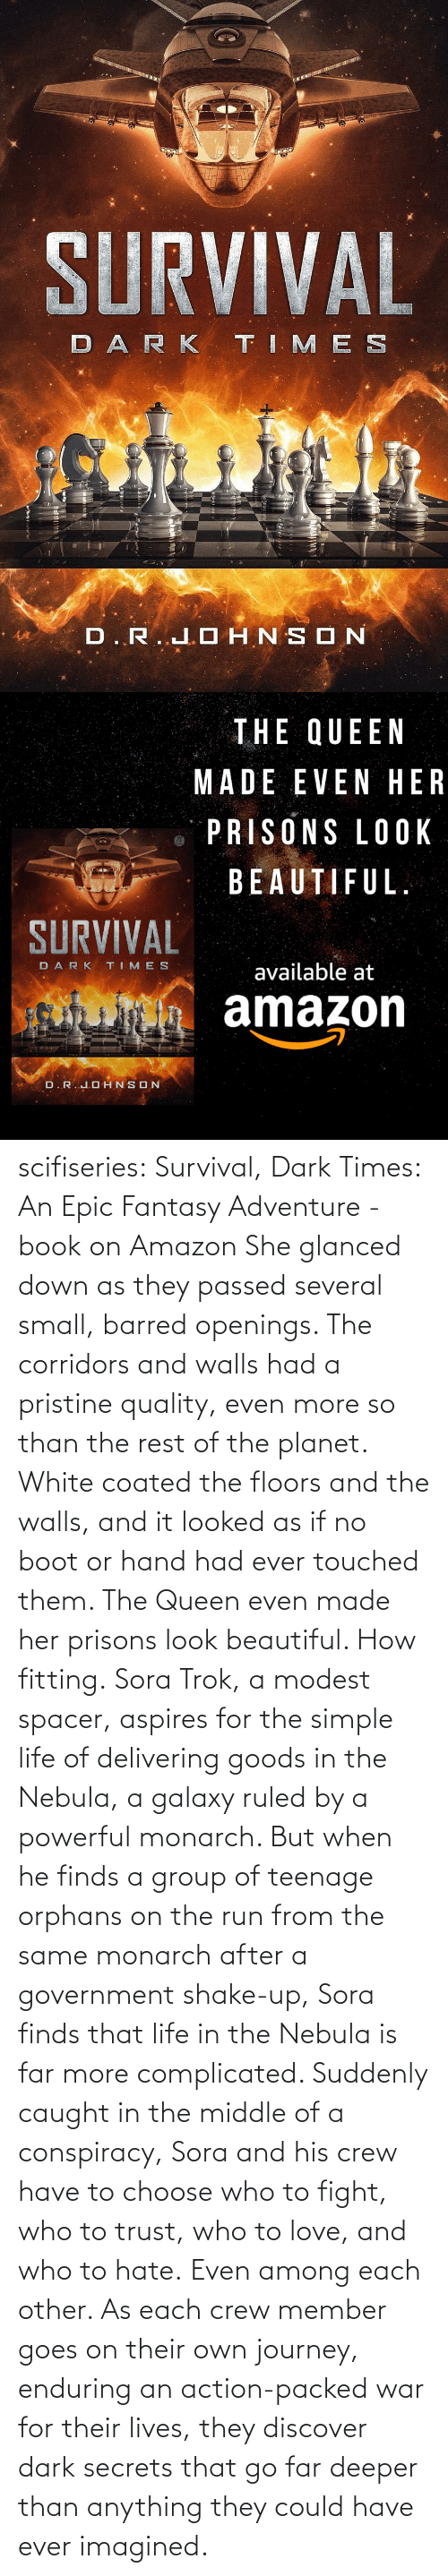 Could: scifiseries: Survival, Dark Times: An Epic Fantasy Adventure - book on Amazon  She glanced down as they  passed several small, barred openings. The corridors and walls had a  pristine quality, even more so than the rest of the planet. White coated  the floors and the walls, and it looked as if no boot or hand had ever  touched them.  The Queen even made her prisons look beautiful.  How fitting. Sora  Trok, a modest spacer, aspires for the simple life of delivering goods  in the Nebula, a galaxy ruled by a powerful monarch. But when he finds a  group of teenage orphans on the run from the same monarch after a  government shake-up, Sora finds that life in the Nebula is far more complicated.  Suddenly  caught in the middle of a conspiracy, Sora and his crew have to choose  who to fight, who to trust, who to love, and who to hate. Even among each other.  As  each crew member goes on their own journey, enduring an action-packed  war for their lives, they discover dark secrets that go far deeper than  anything they could have ever imagined.